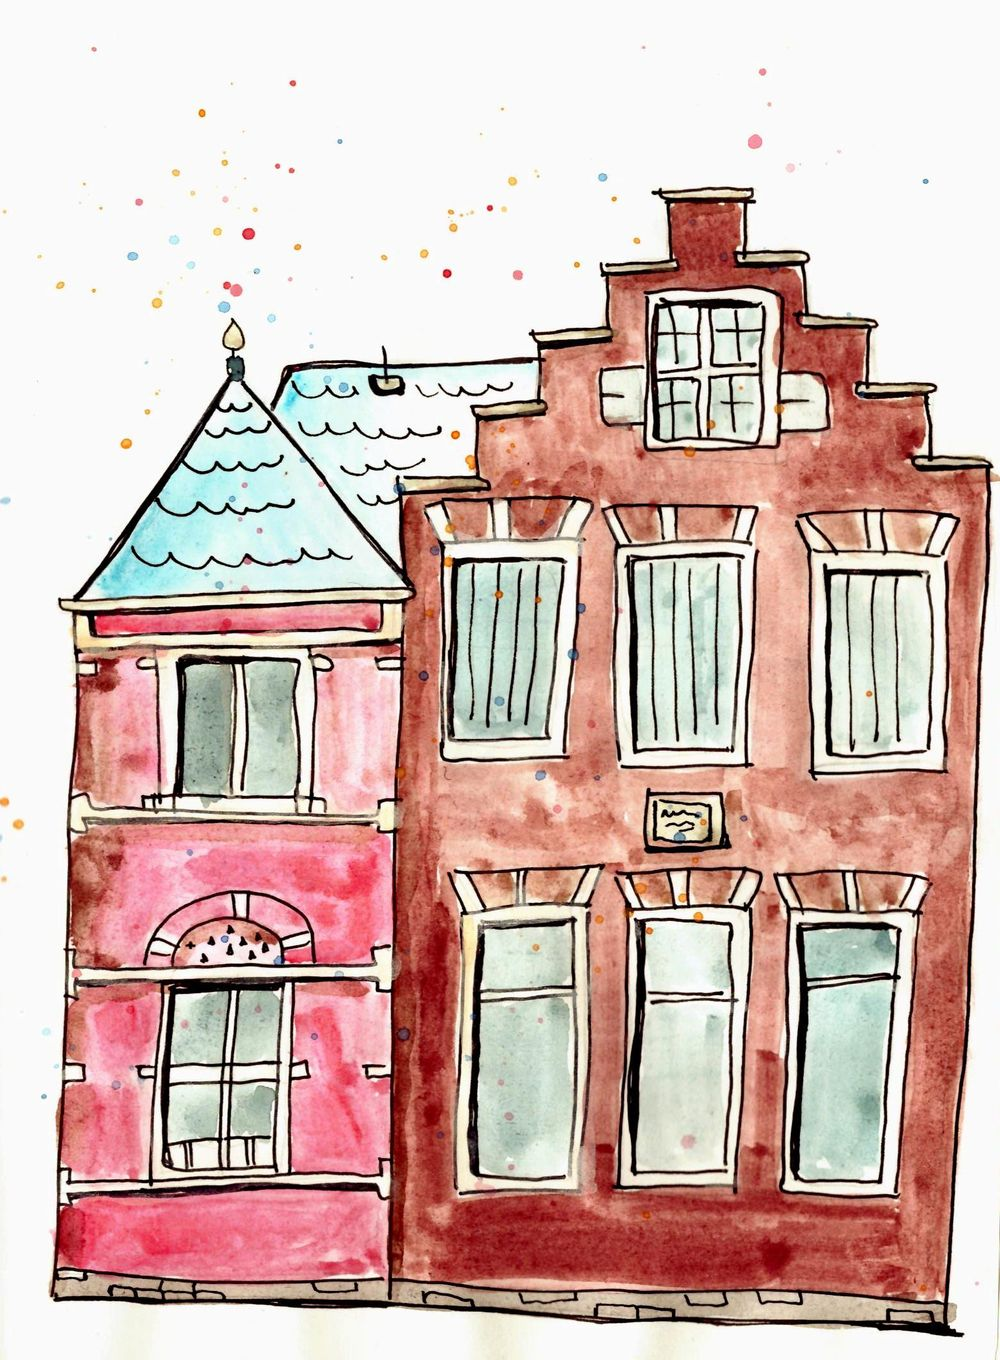 house urban sketch & watercolor  - image 1 - student project